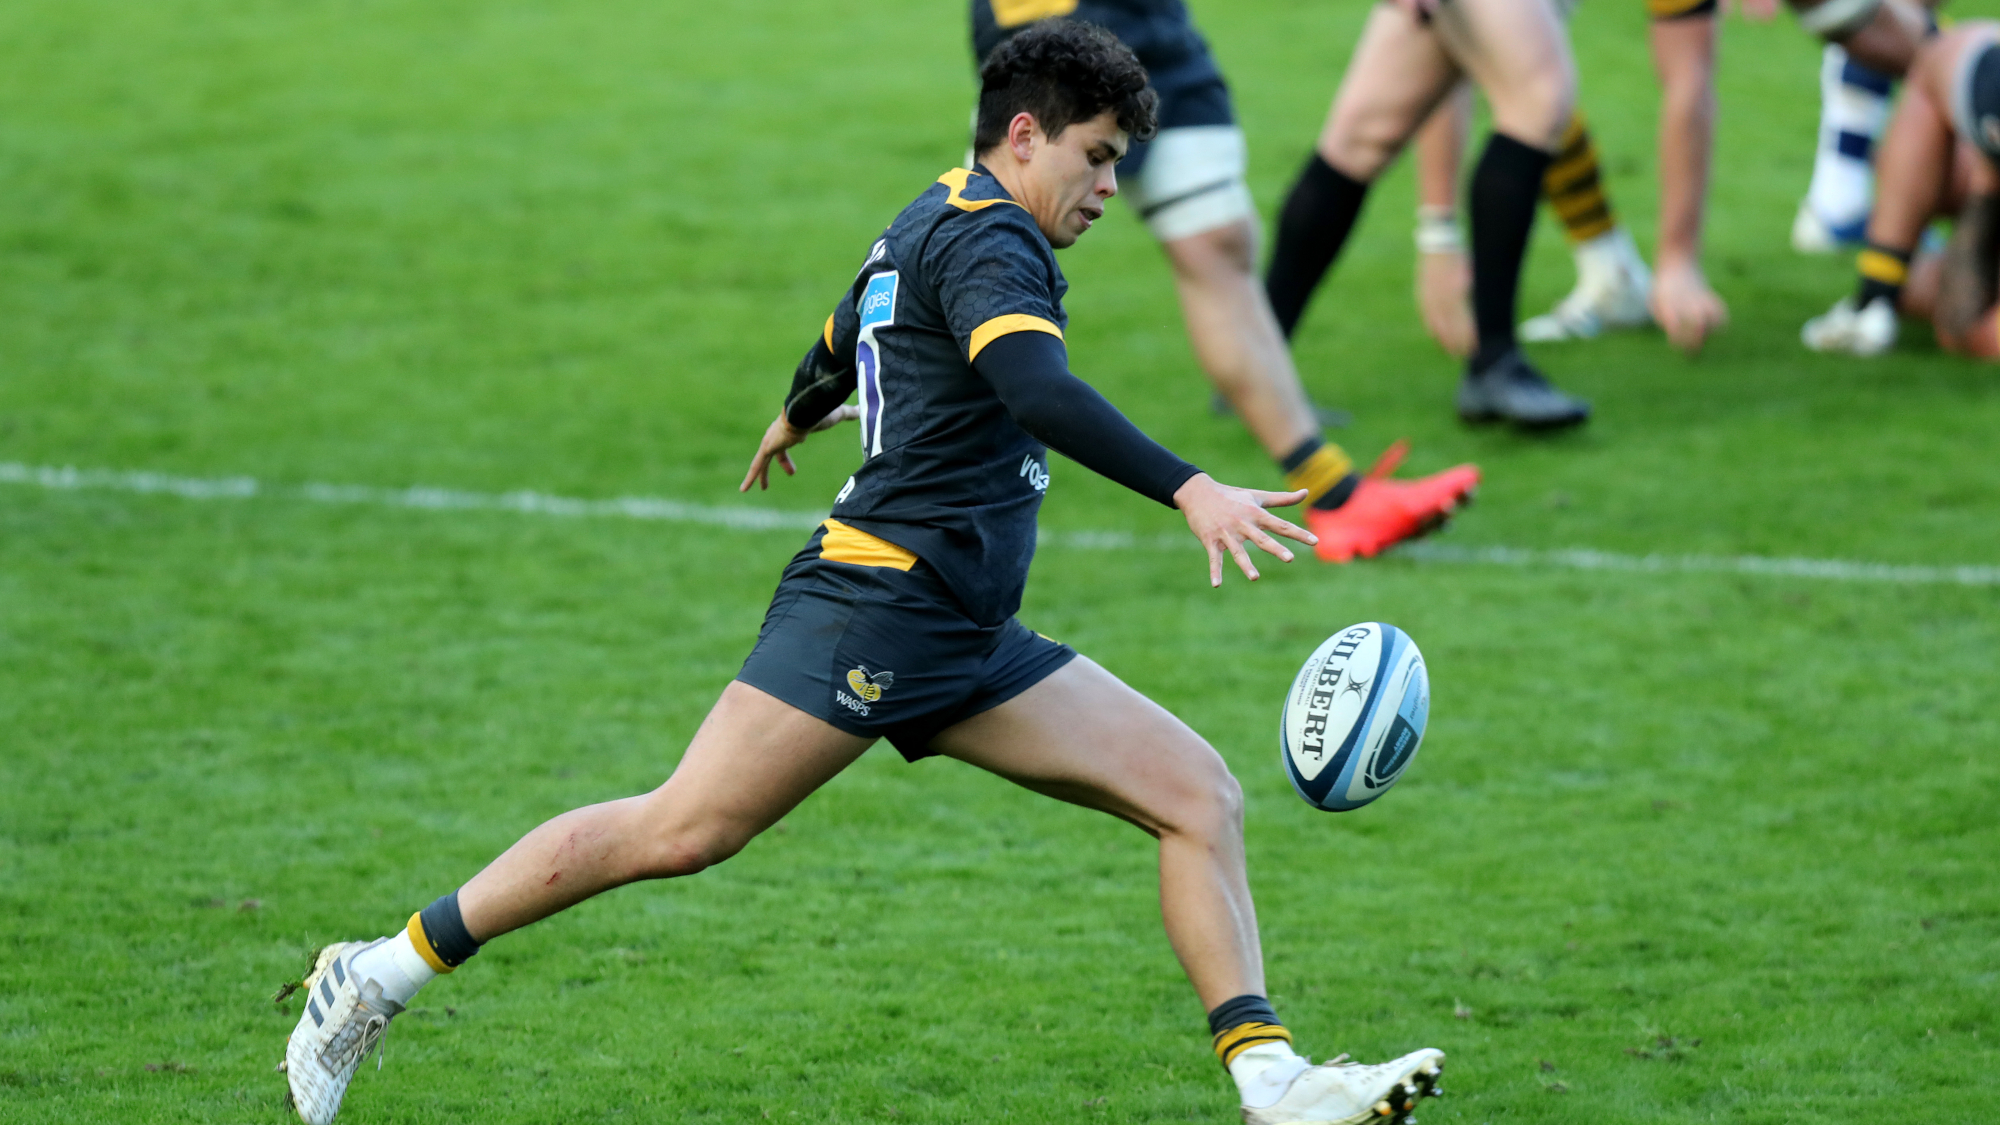 Premiership Rugby launches Project Rugby at Home with Gallagher